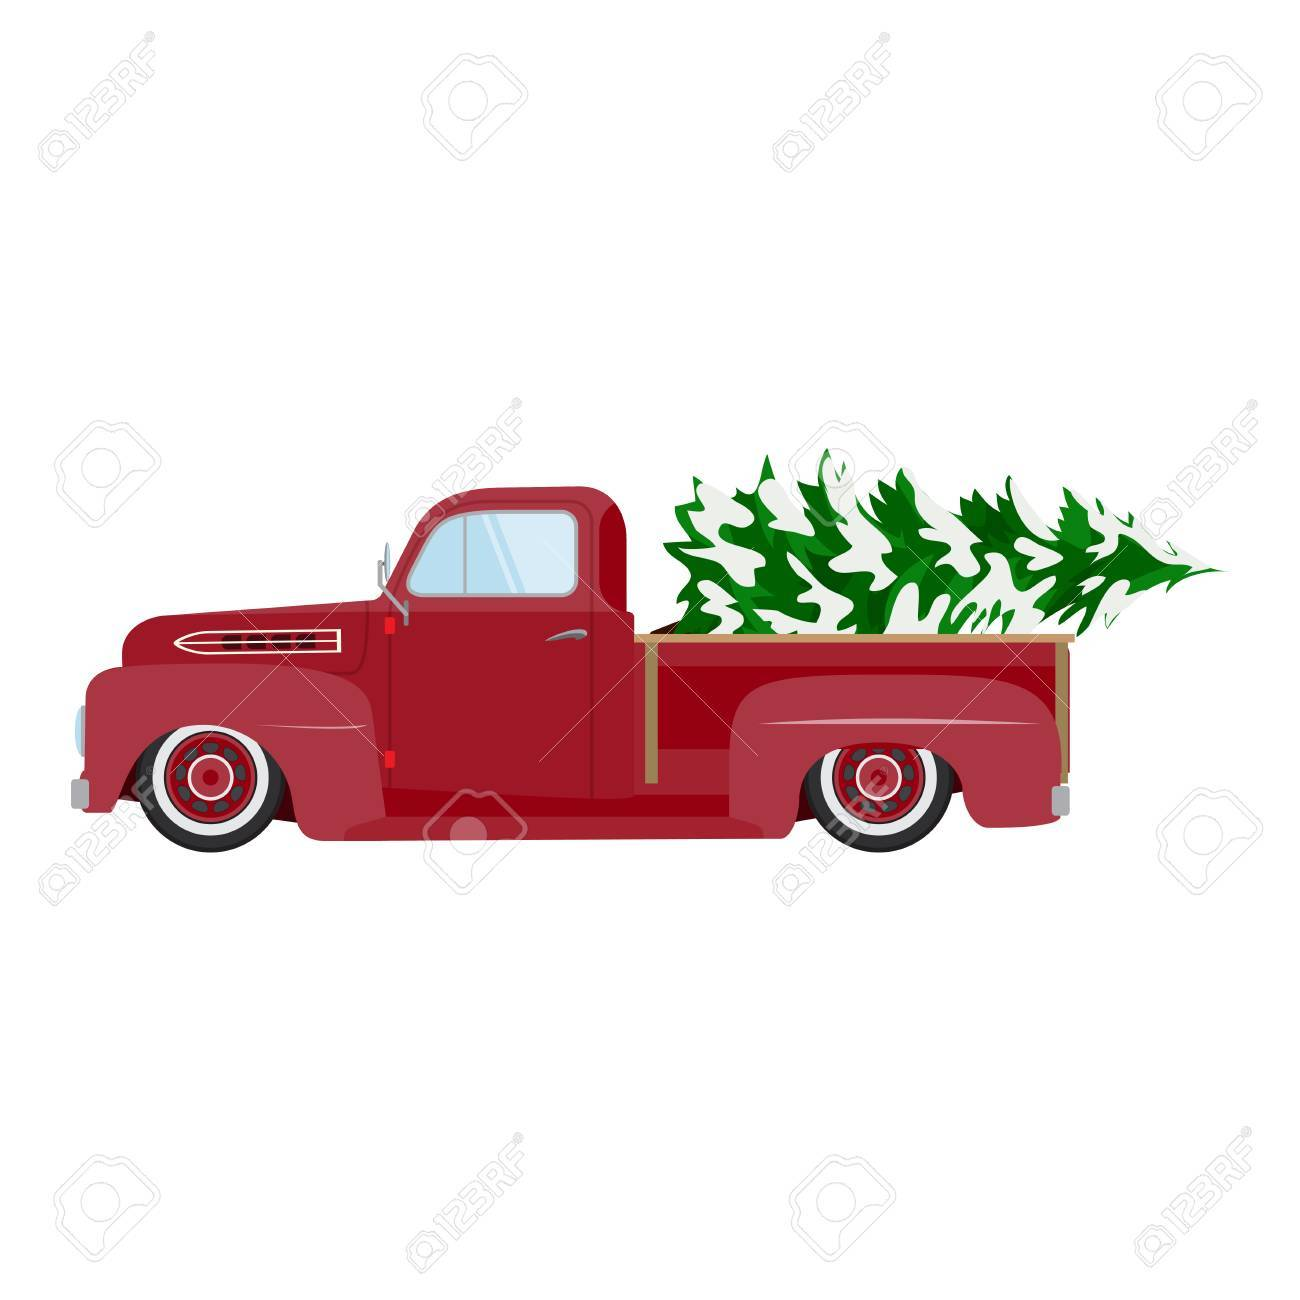 Vintage Red Car With Christmas Tree Christmas Picture Red Pickup Royalty Free Cliparts Vectors And Stock Illustration Image 68722167